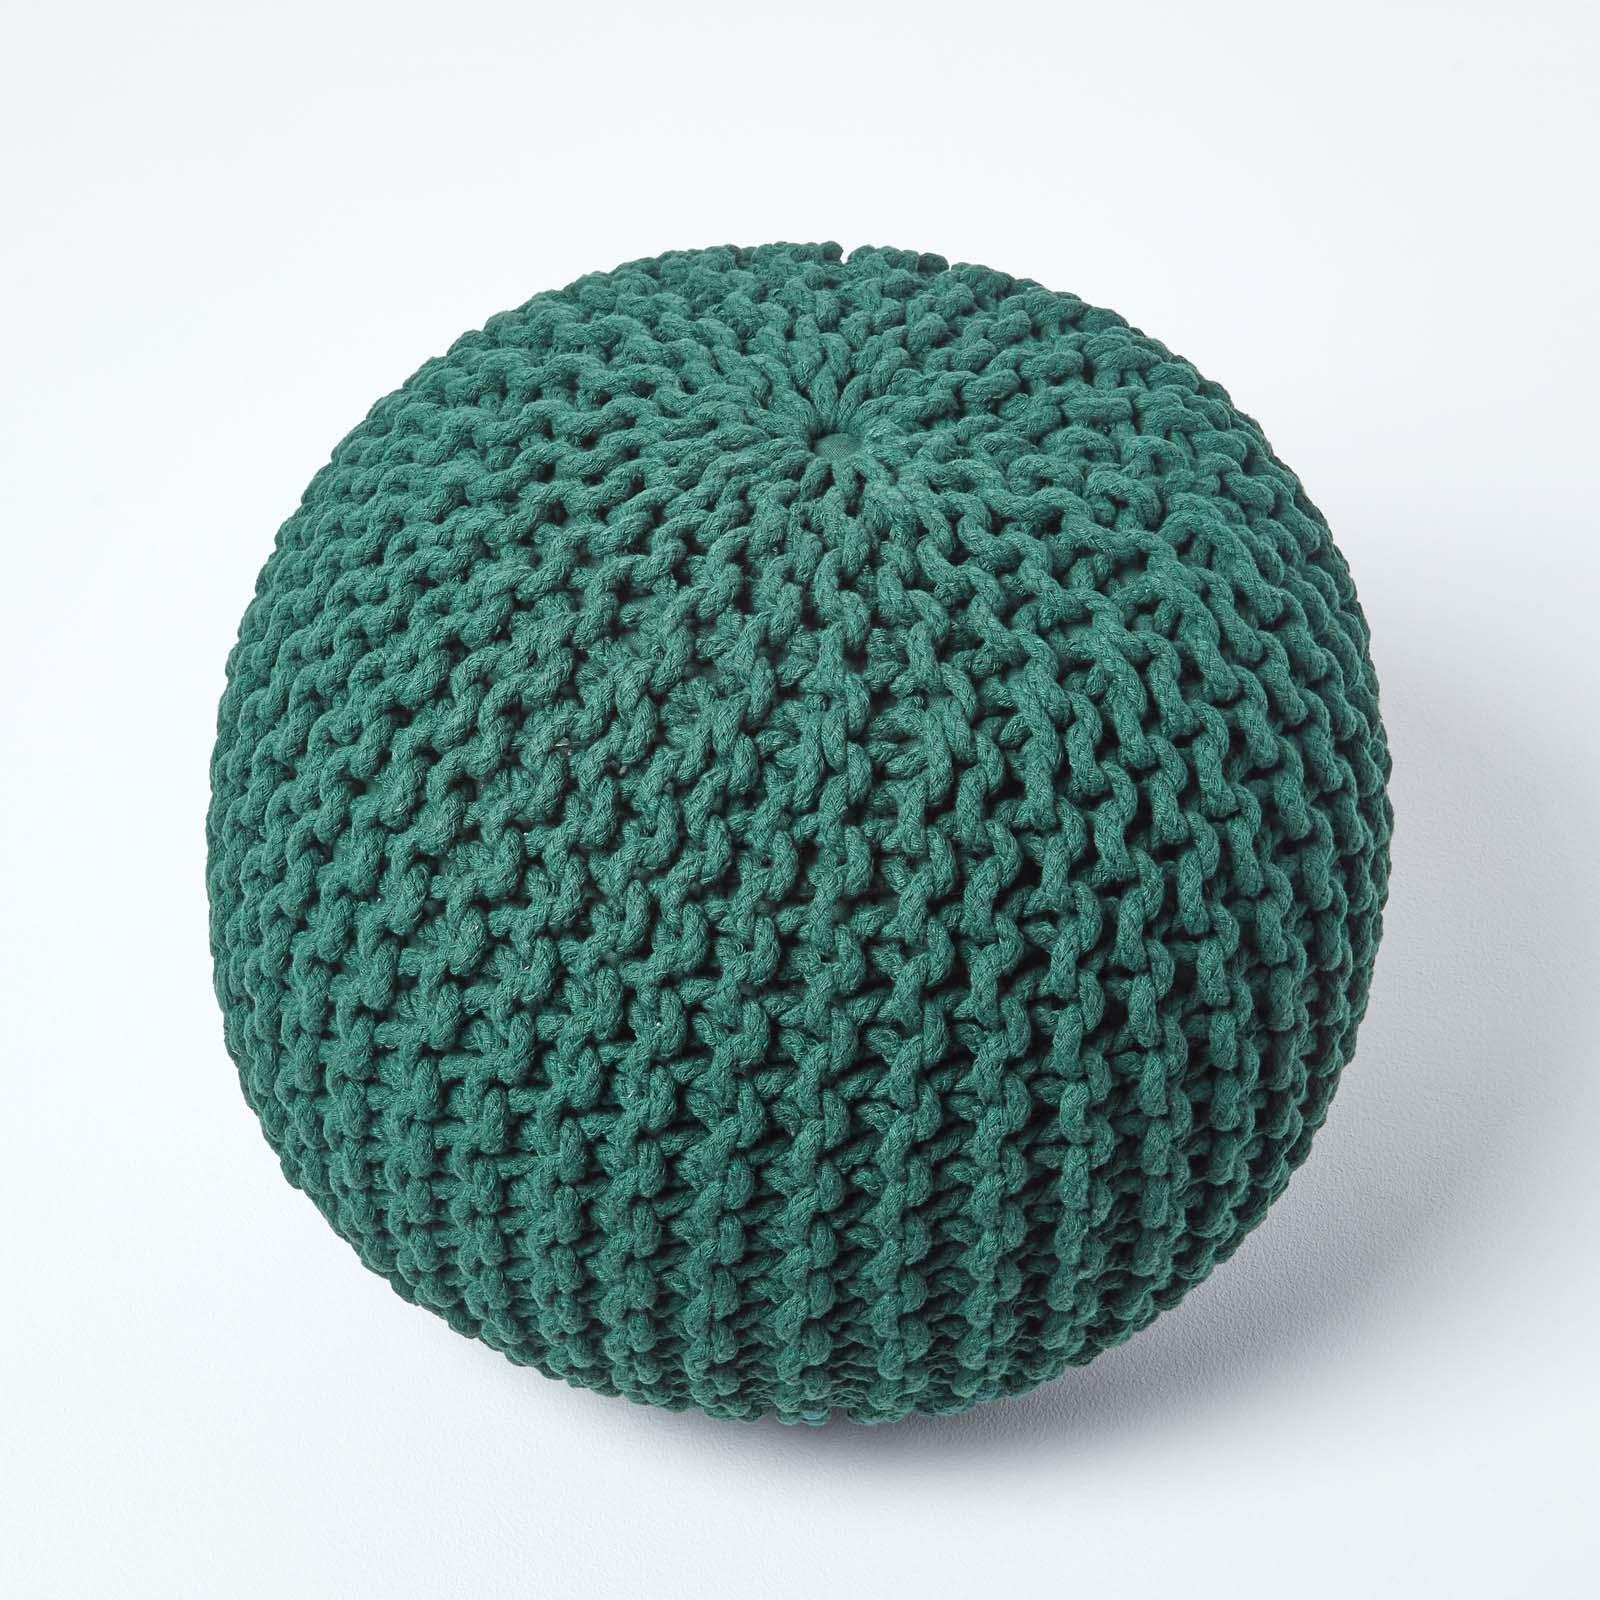 Hand-Knitted-100-Cotton-Pouffes-Round-Sphere-Or-Cube-Square-Chunky-Footstools thumbnail 48